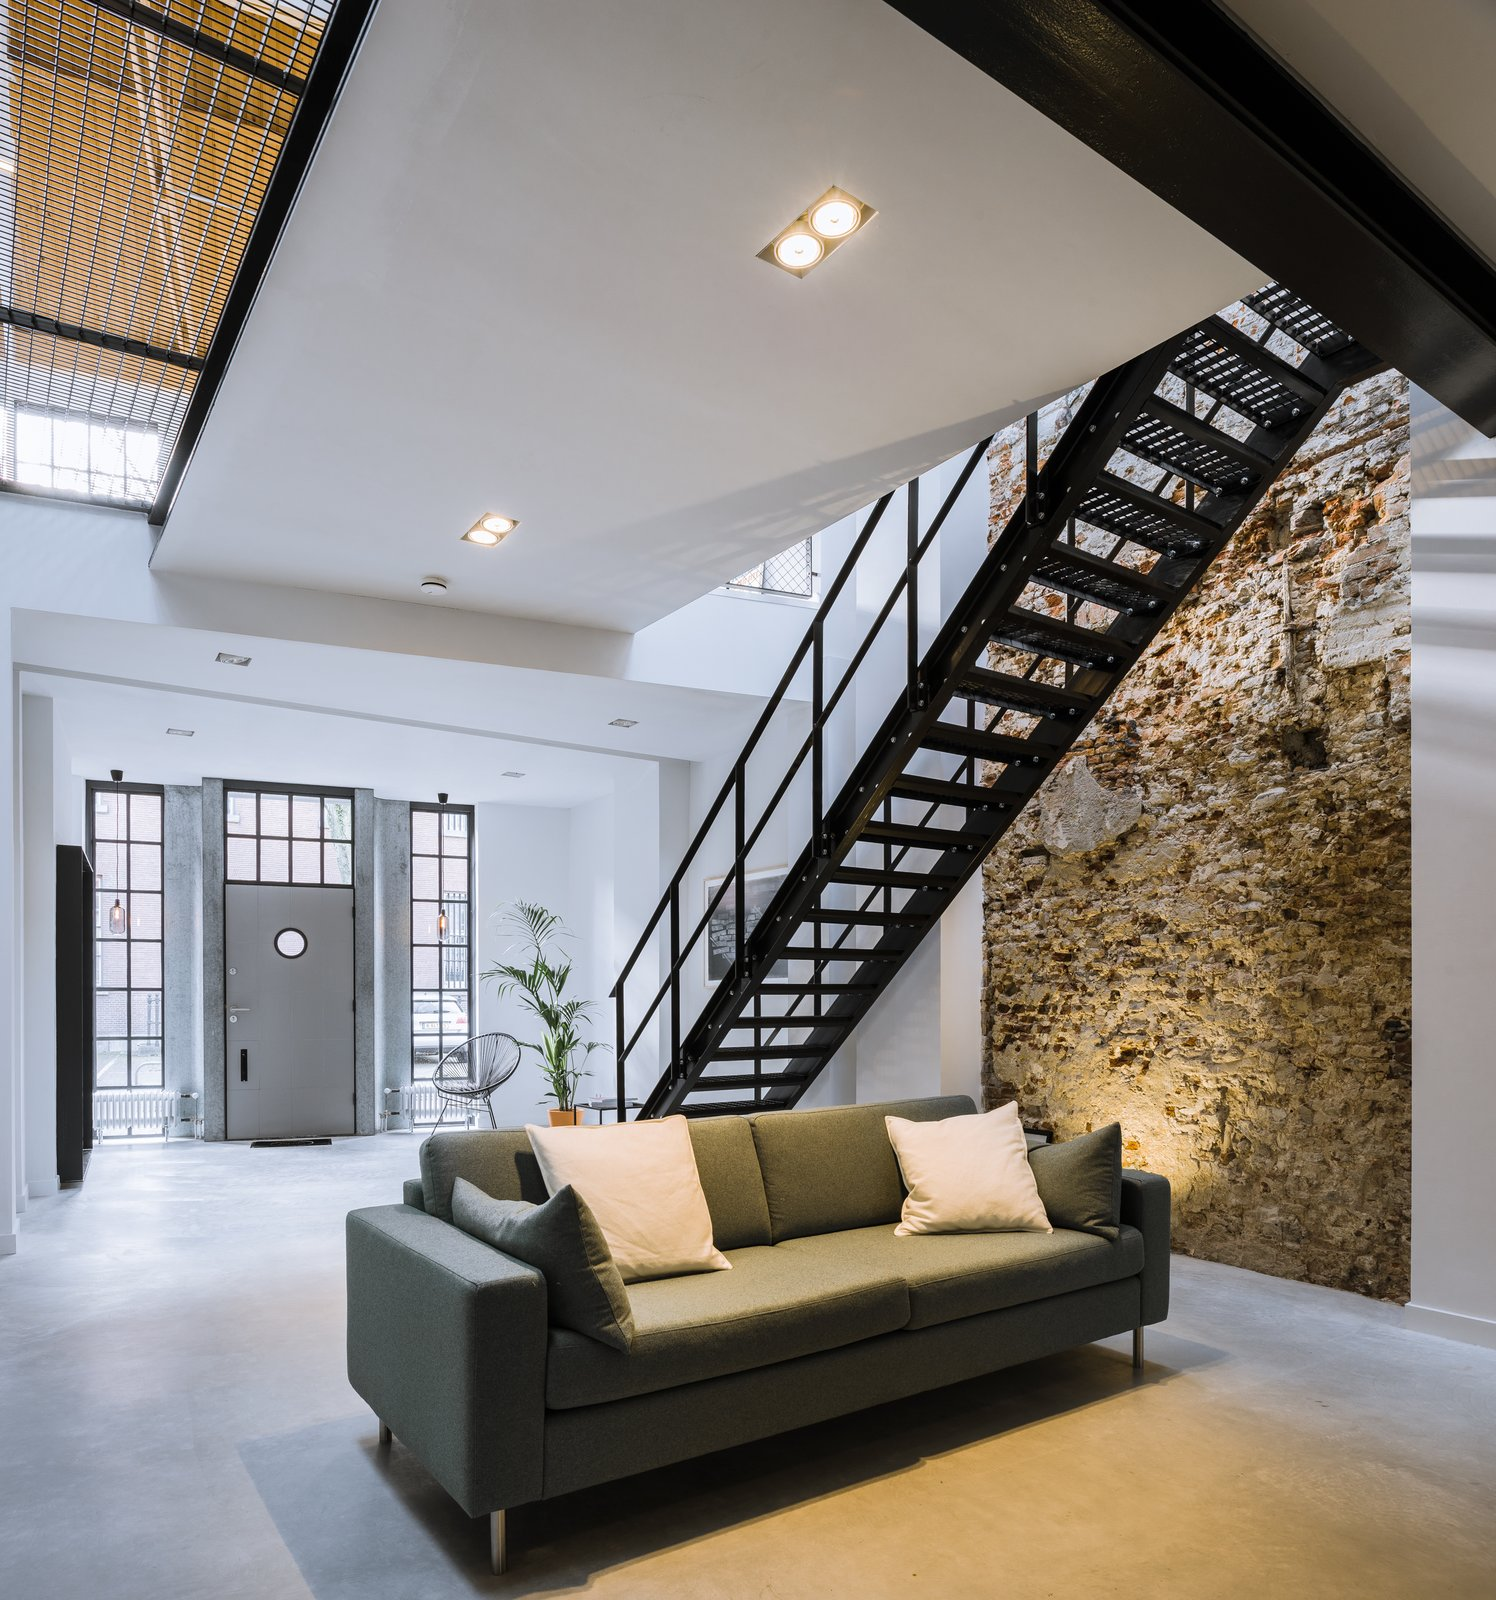 Living Room, Recessed Lighting, Concrete Floor, and Sofa The existing steel beams and wooden floor structure of the upper level were retained.  Photo 5 of 14 in A 19th-Century Dutch Workshop Is Now a Stunning, Spacious Loft